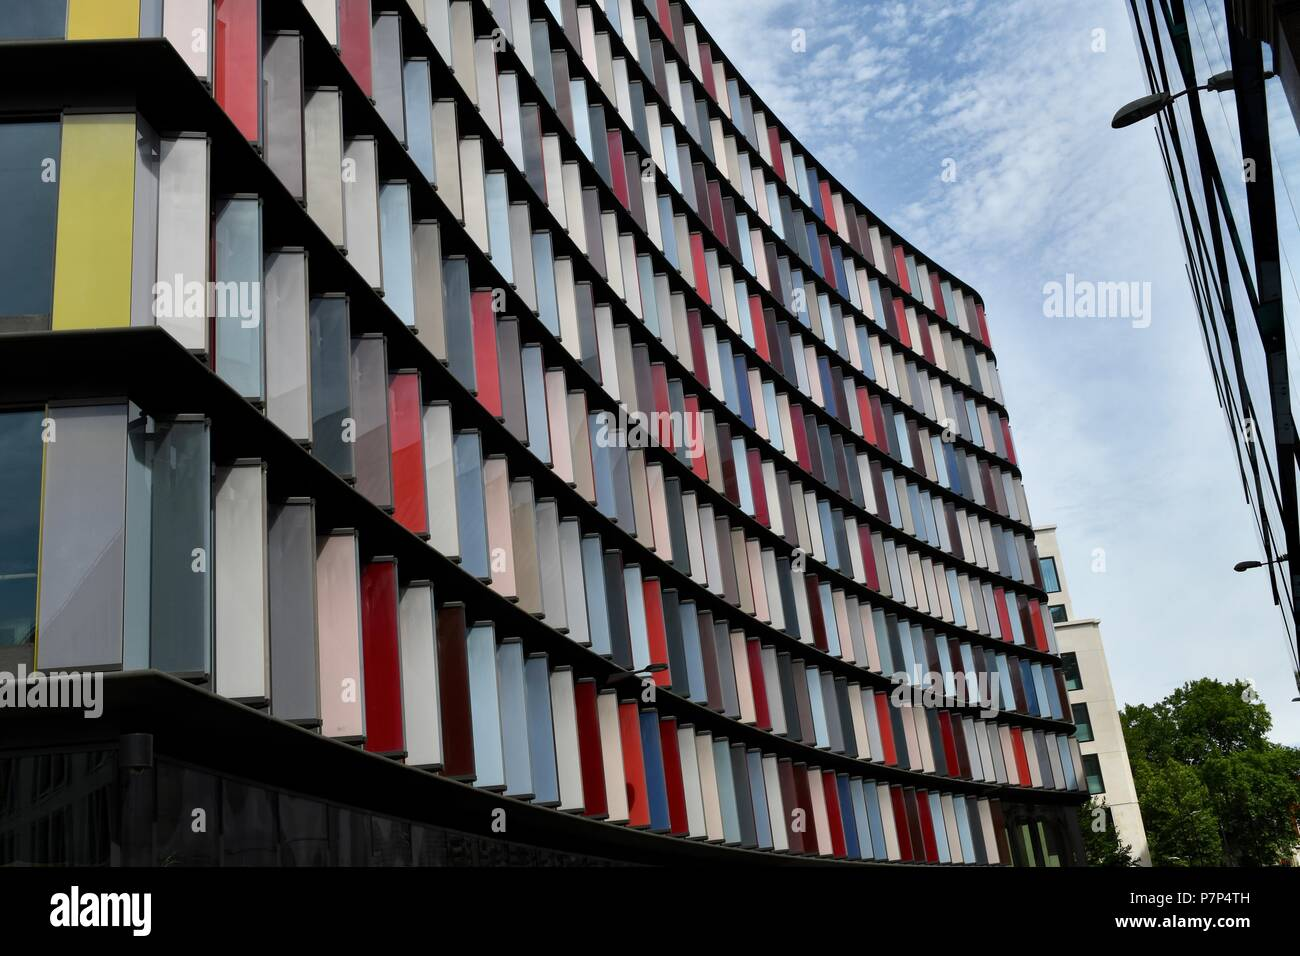 Modern building with colourful glass panels as protection against the sun - Stock Image